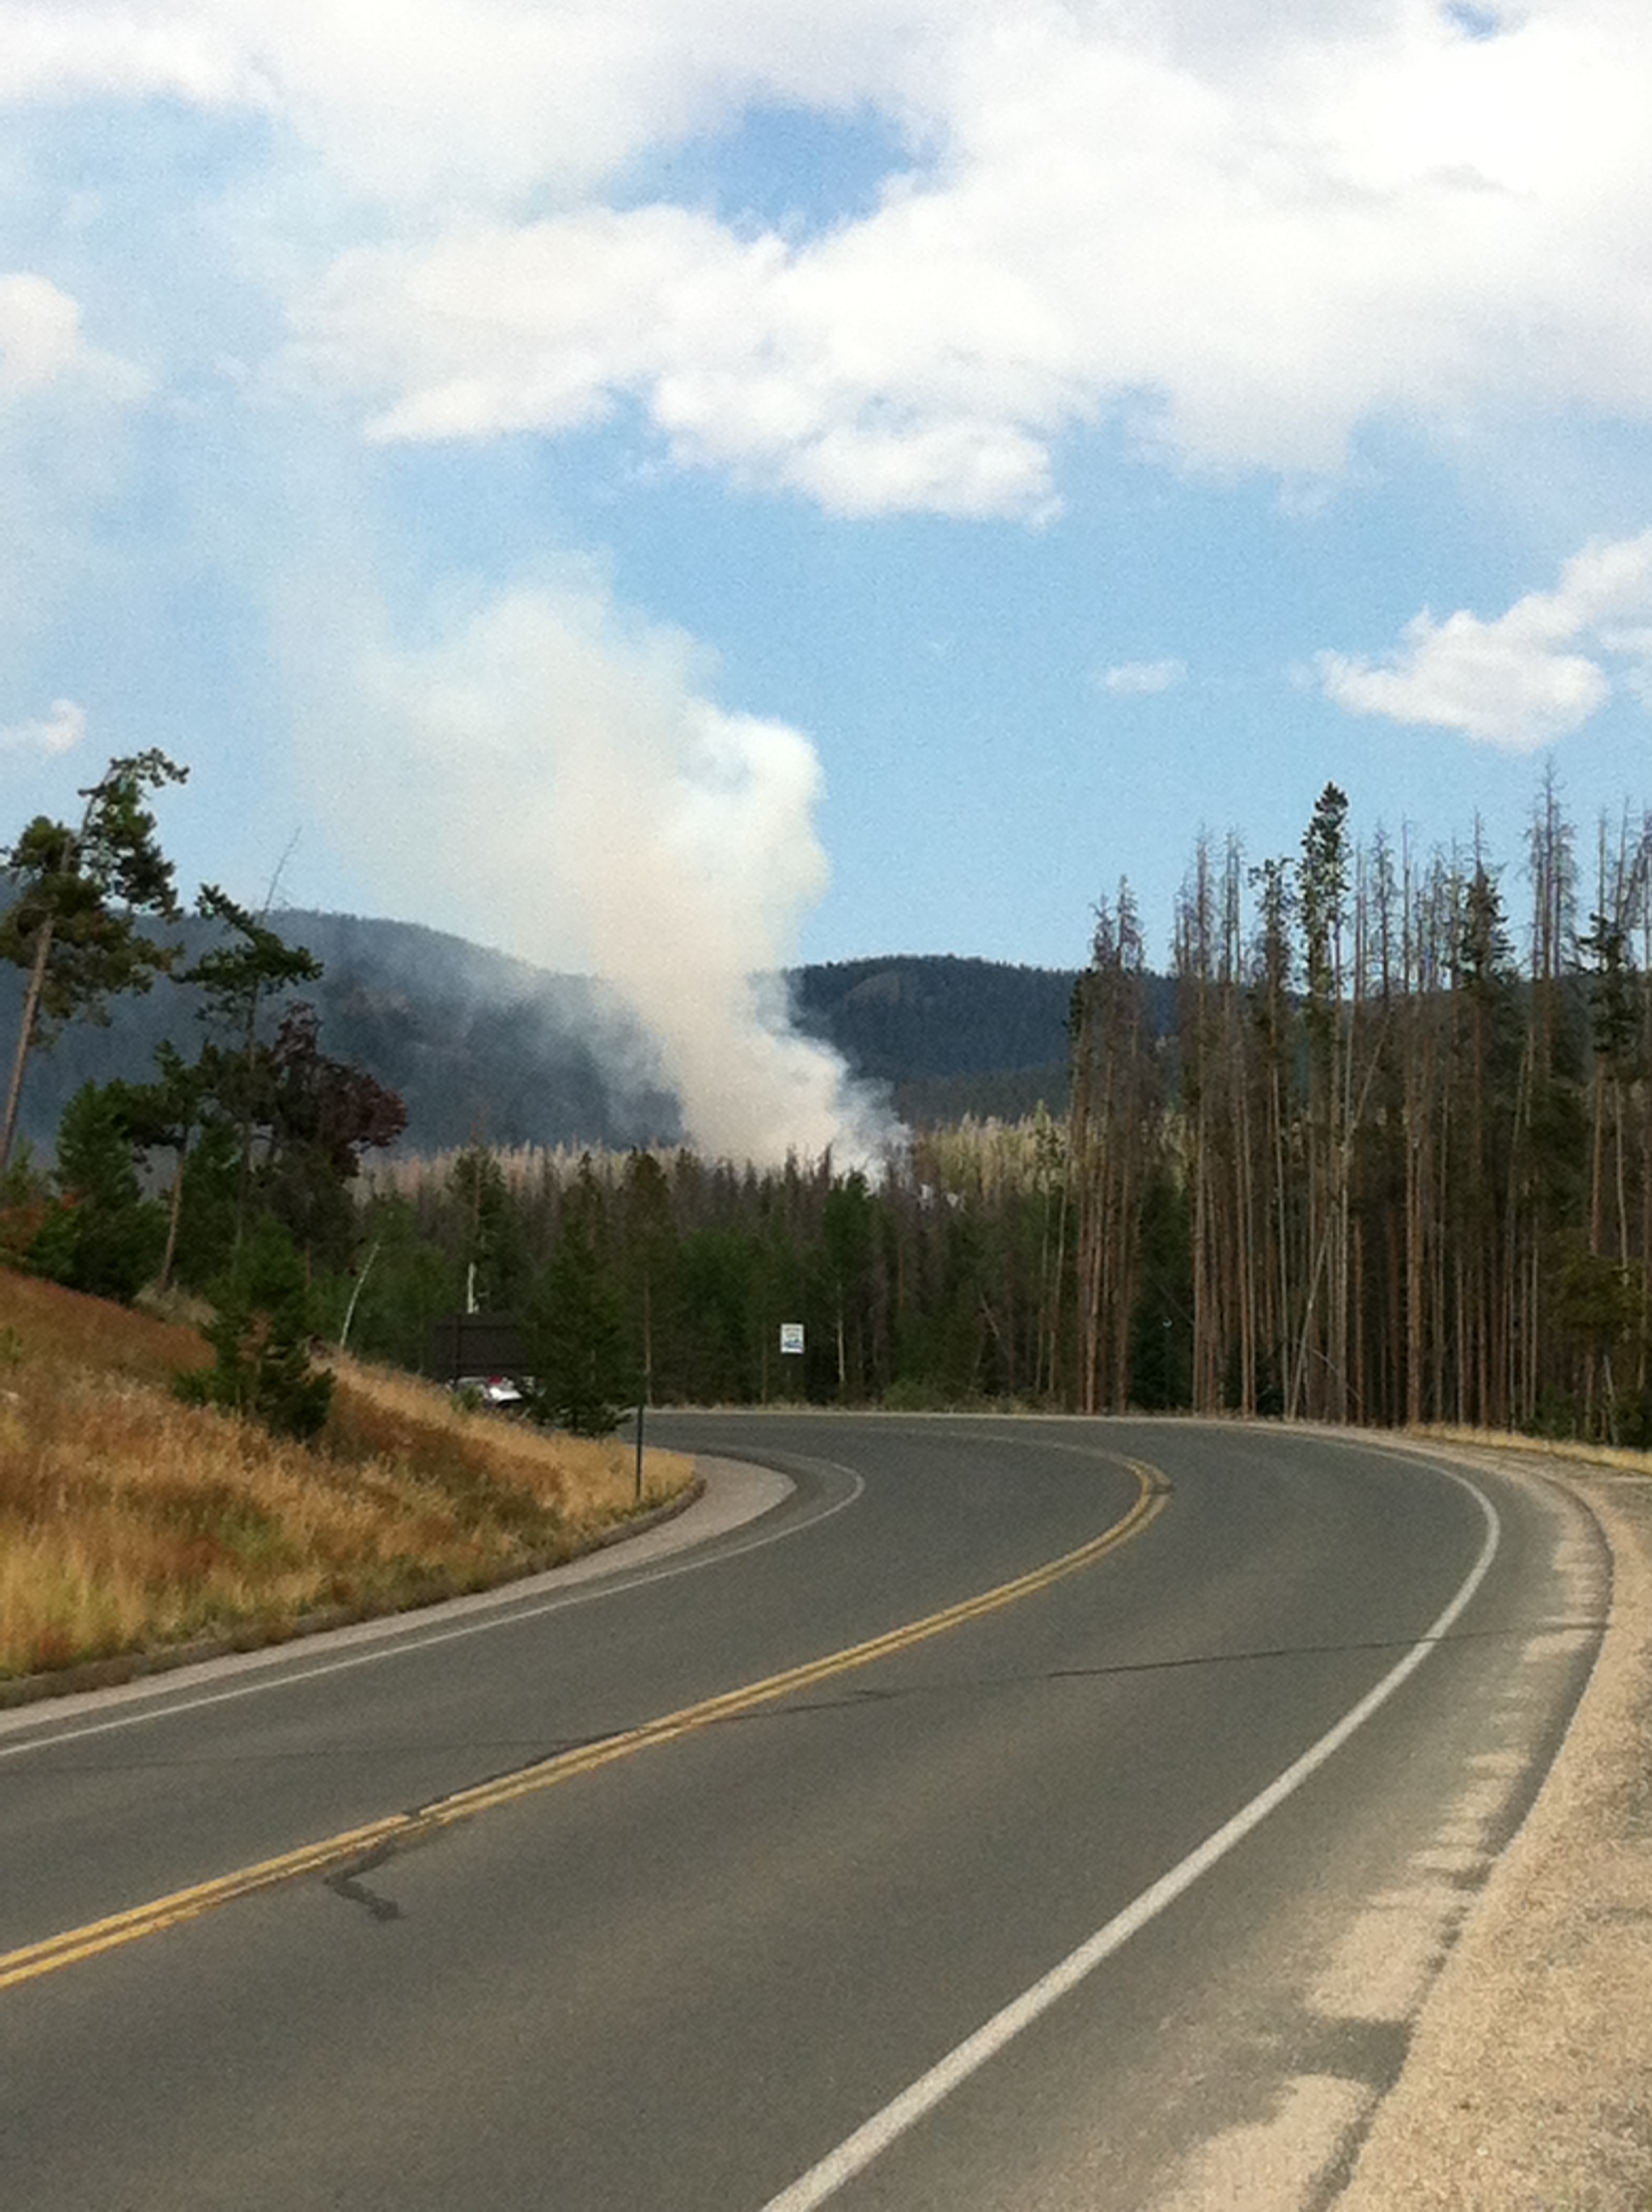 Tonahutu Fire Photo From US 34 in Rocky Mountain National Park